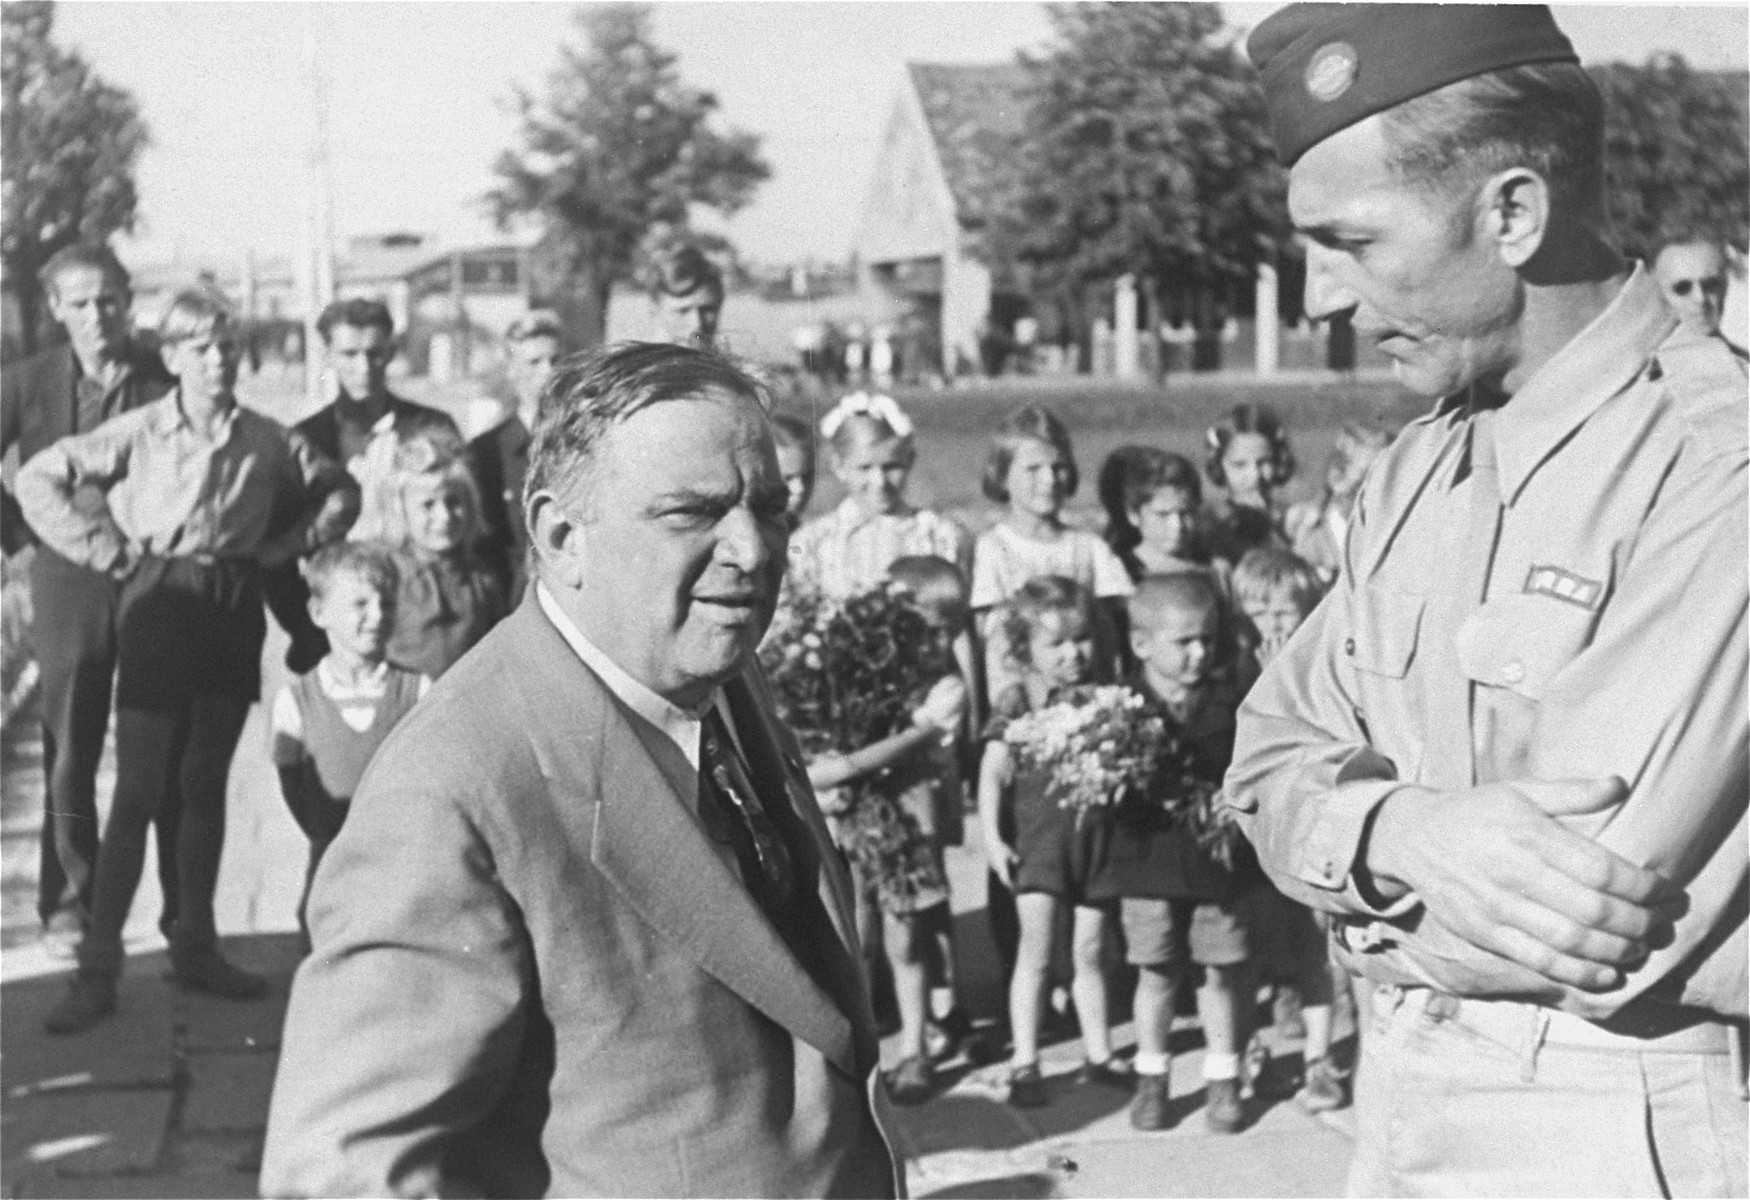 UNRRA Director General Fiorello LaGuardia converses with an unidentified official during a visit to the Neu Freimann displaced persons camp.  In the background a group of children stand in formation.